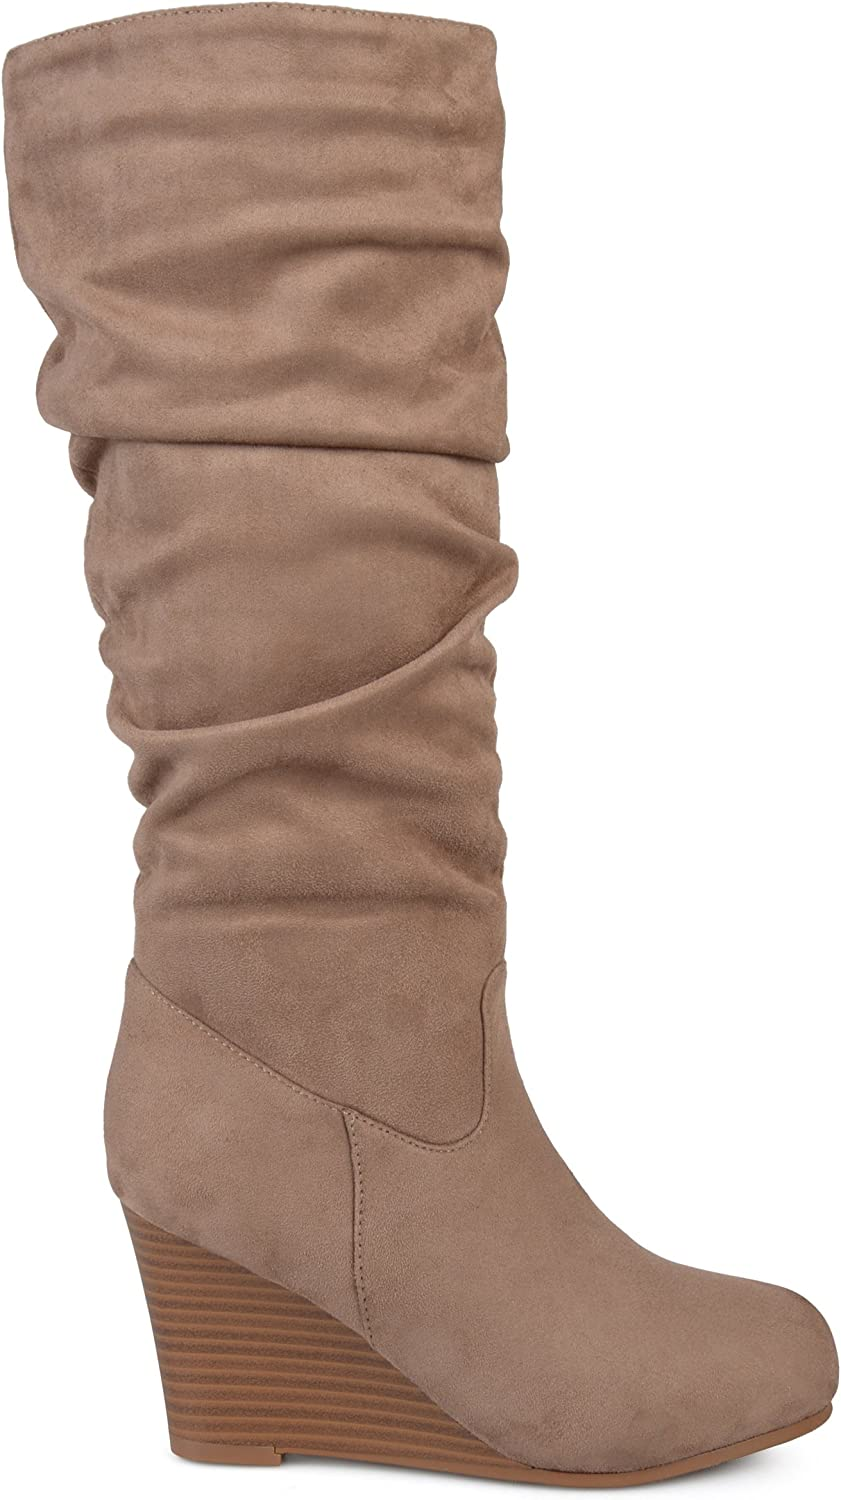 Womens Regular and Wide Calf Slouchy Faux Suede Mid-Calf Wedge Boots Brinley Co